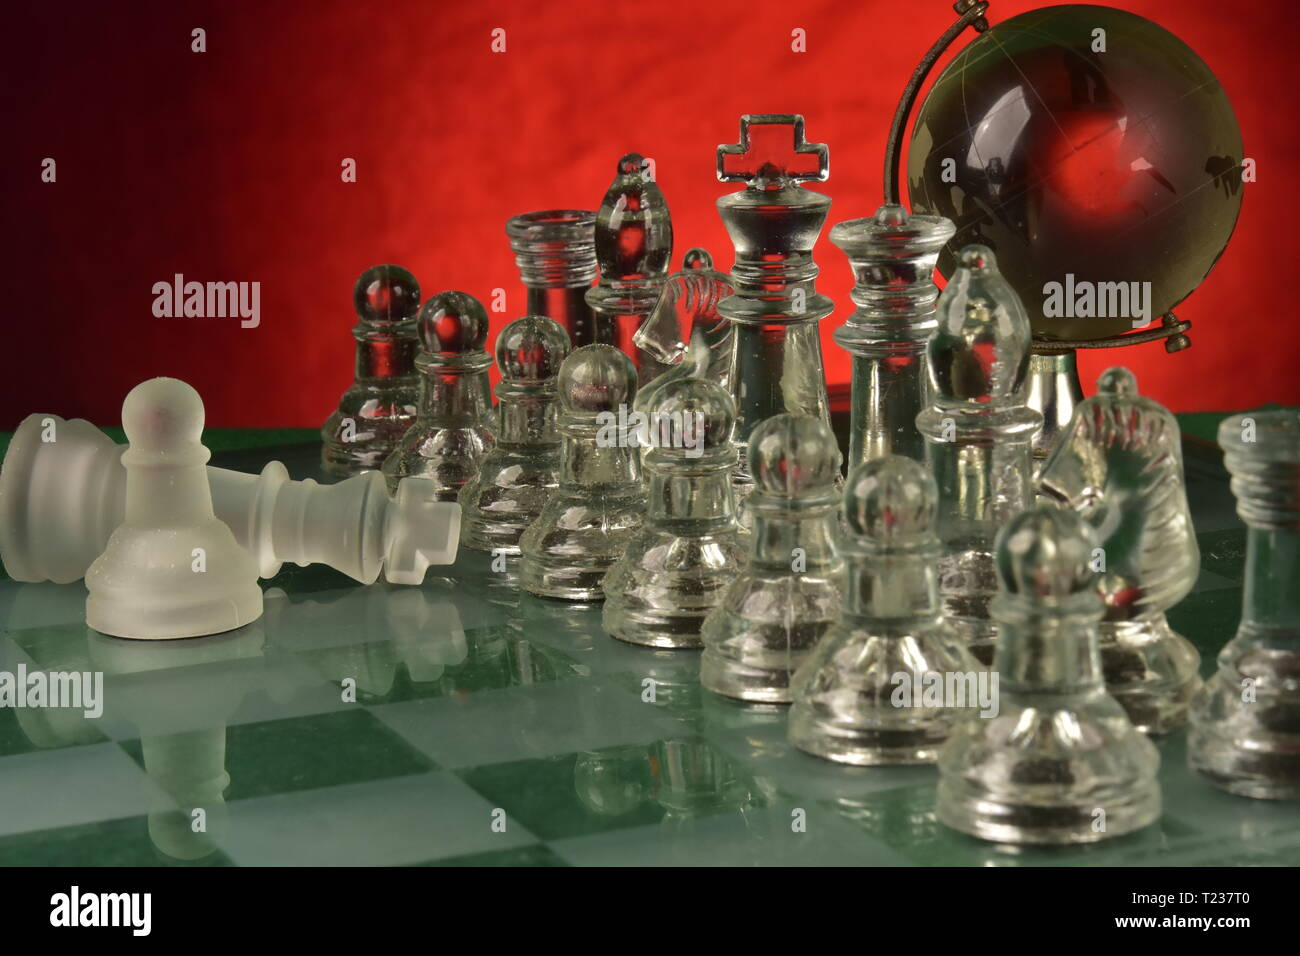 Chessboard table with glass pieces and red background - Stock Image